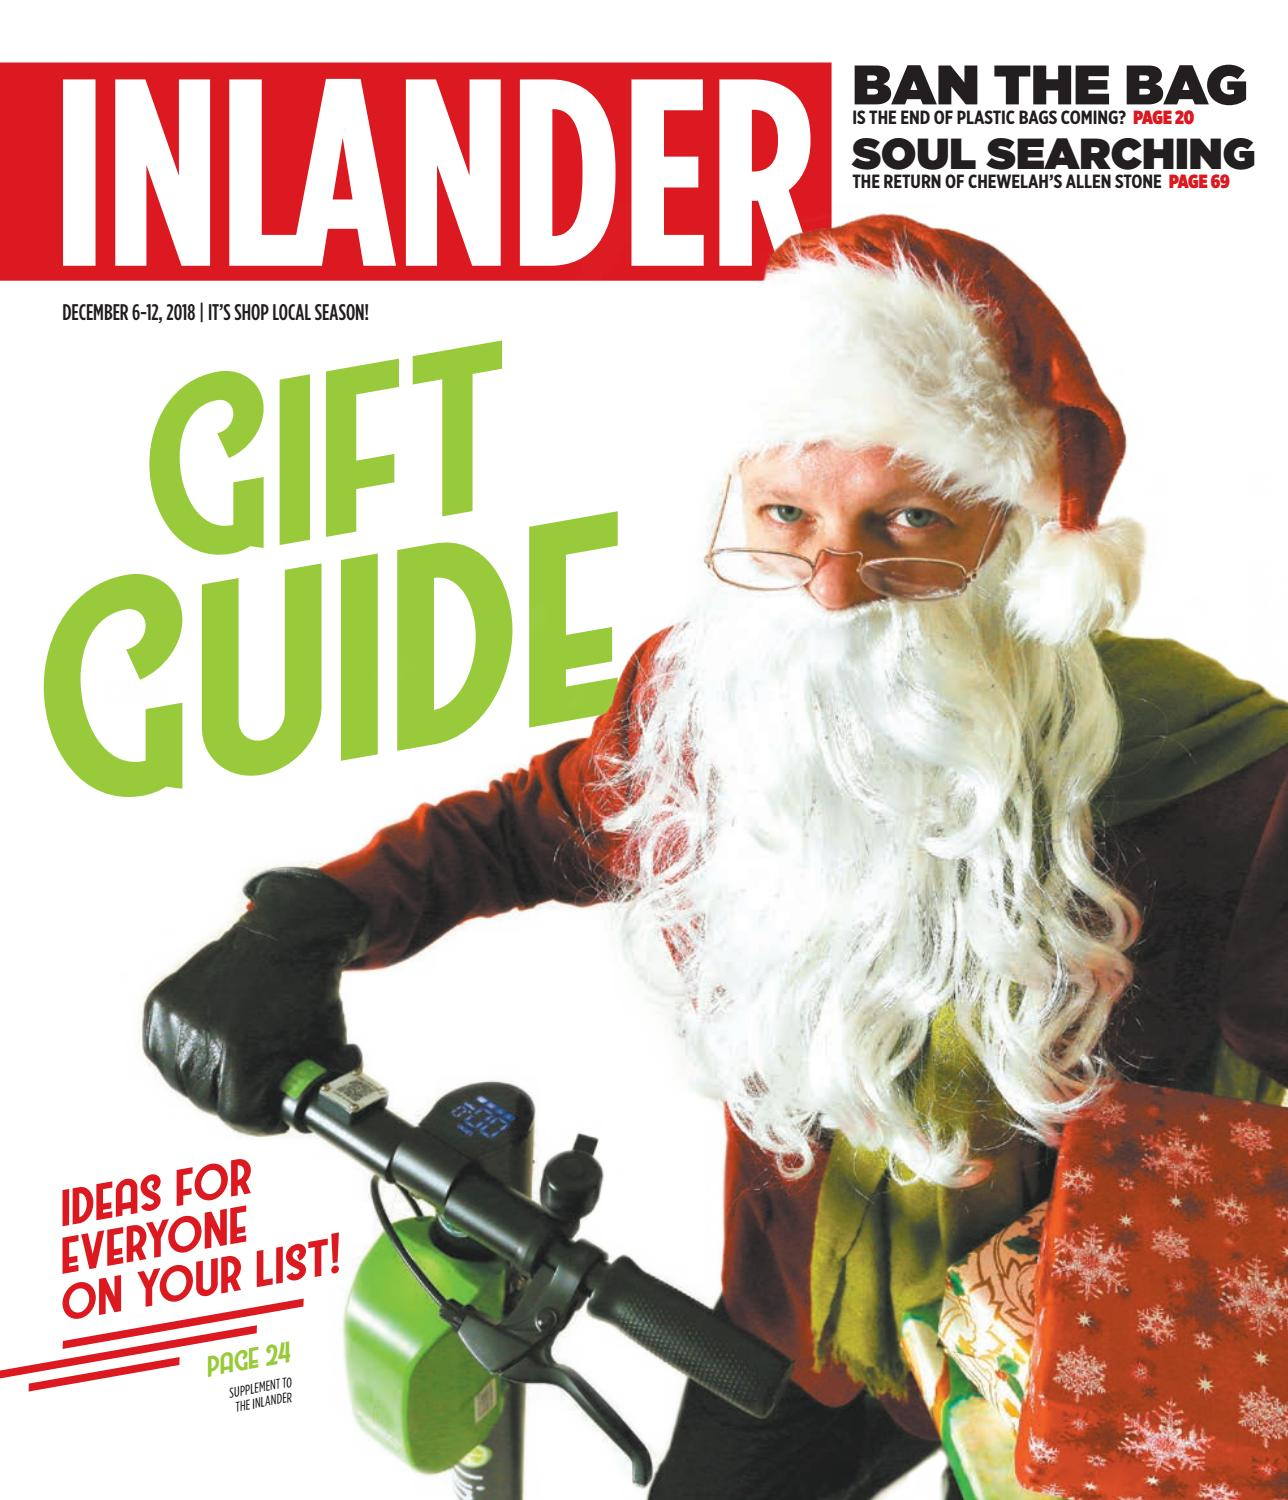 f19c40751a70b5 Inlander 12 06 2018 by The Inlander - issuu